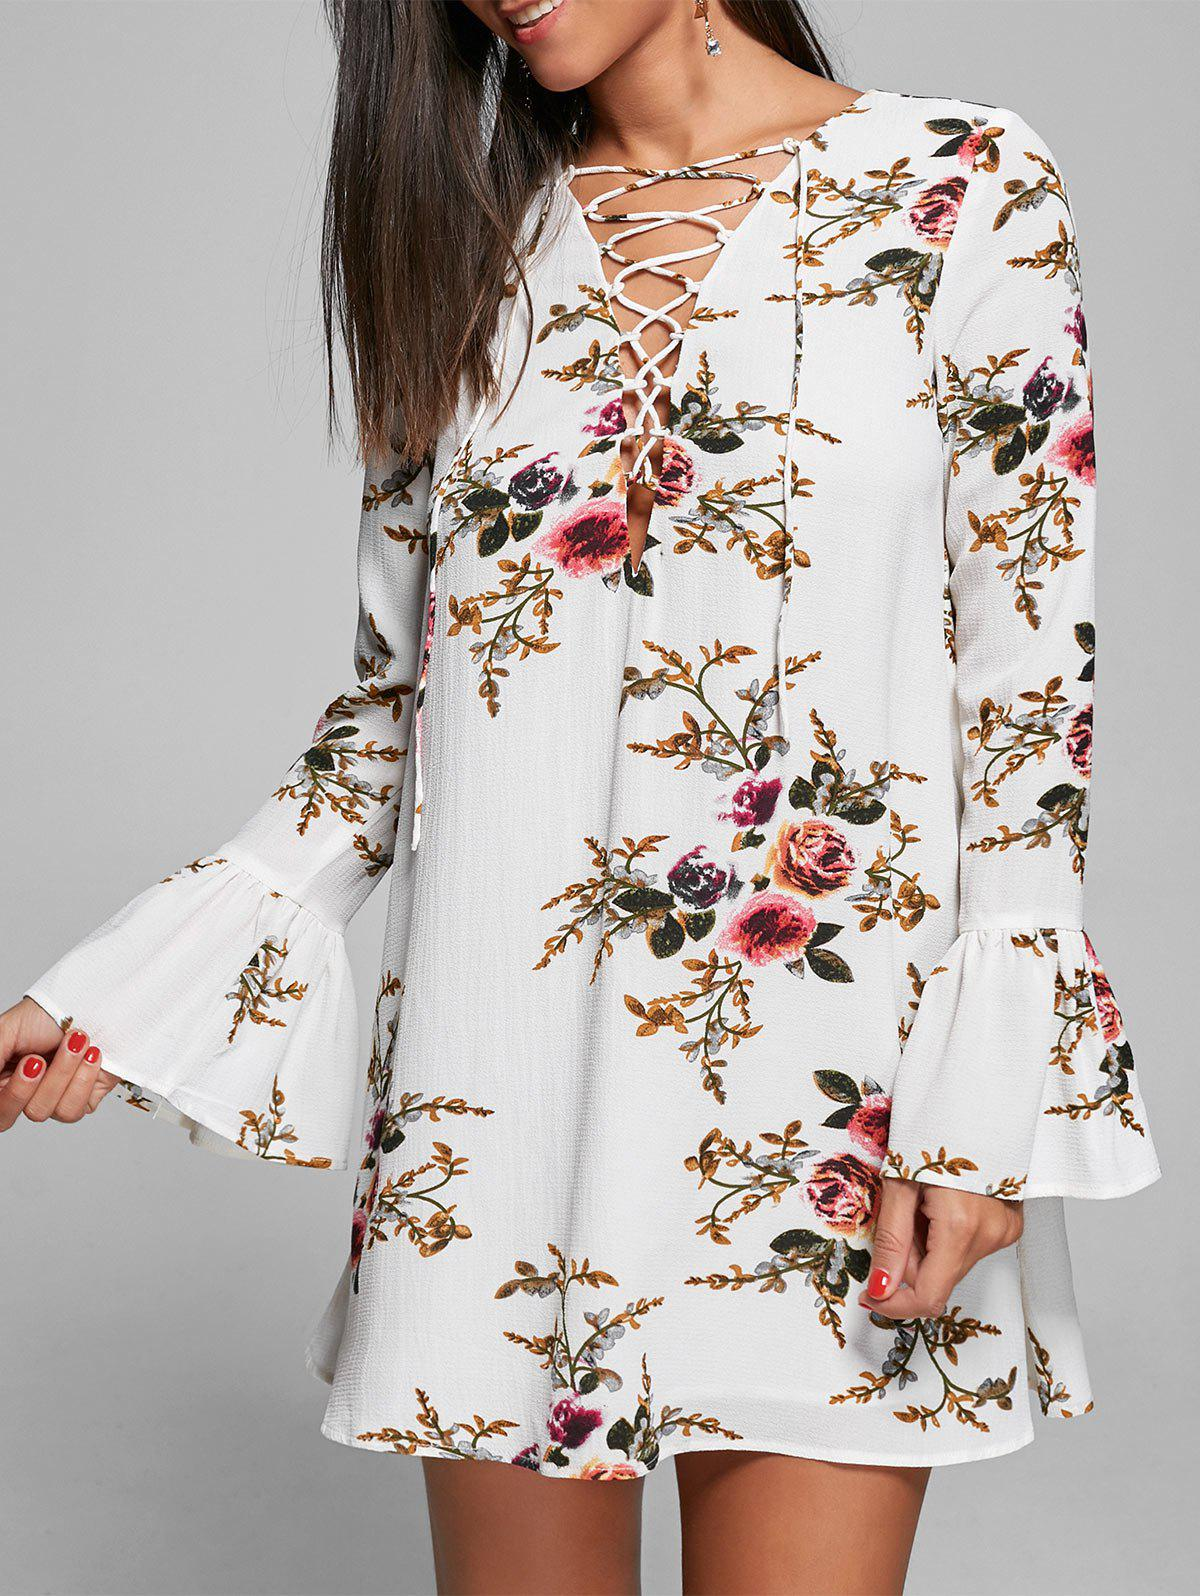 Shop Bell Sleeve Floral Lace Up Mini Dress